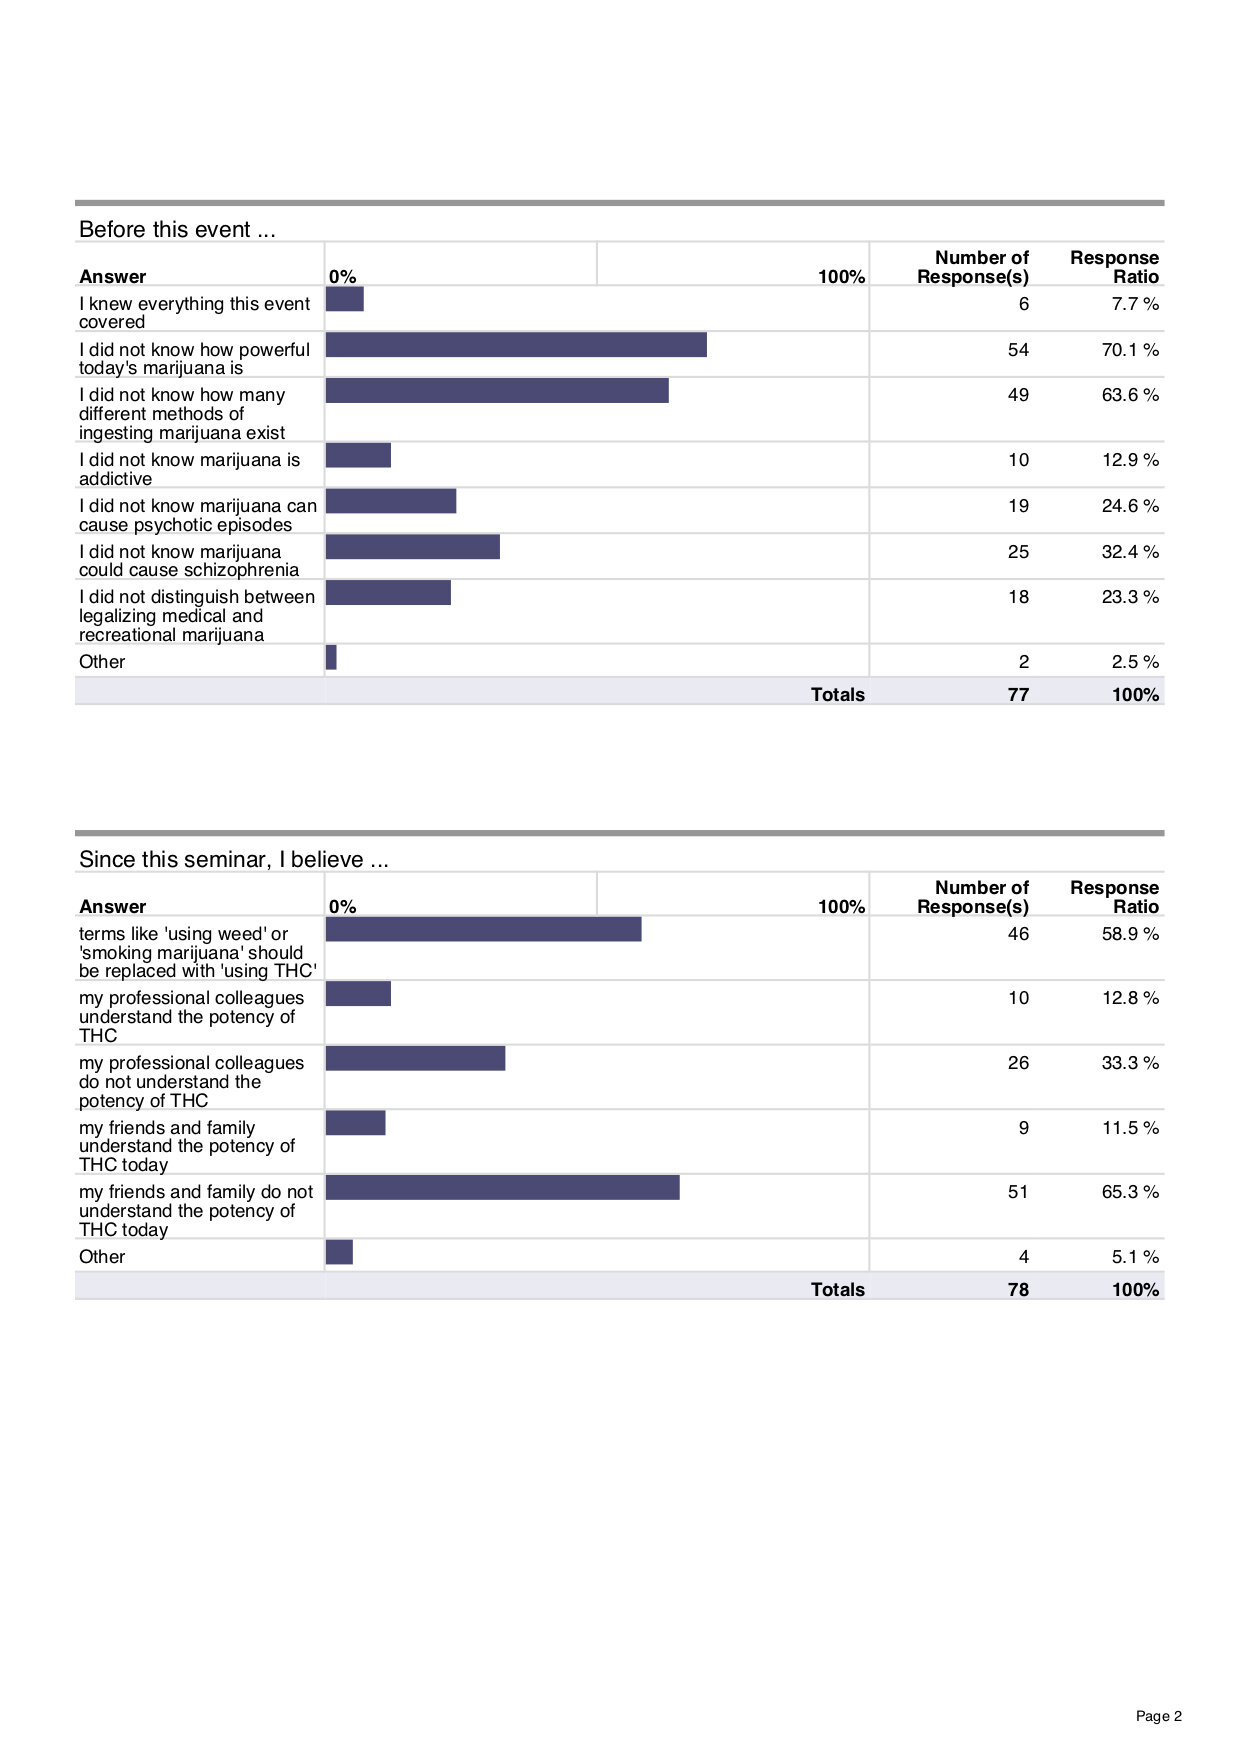 Marijuana Event Survey p2 May 6, 2019 copy.jpg